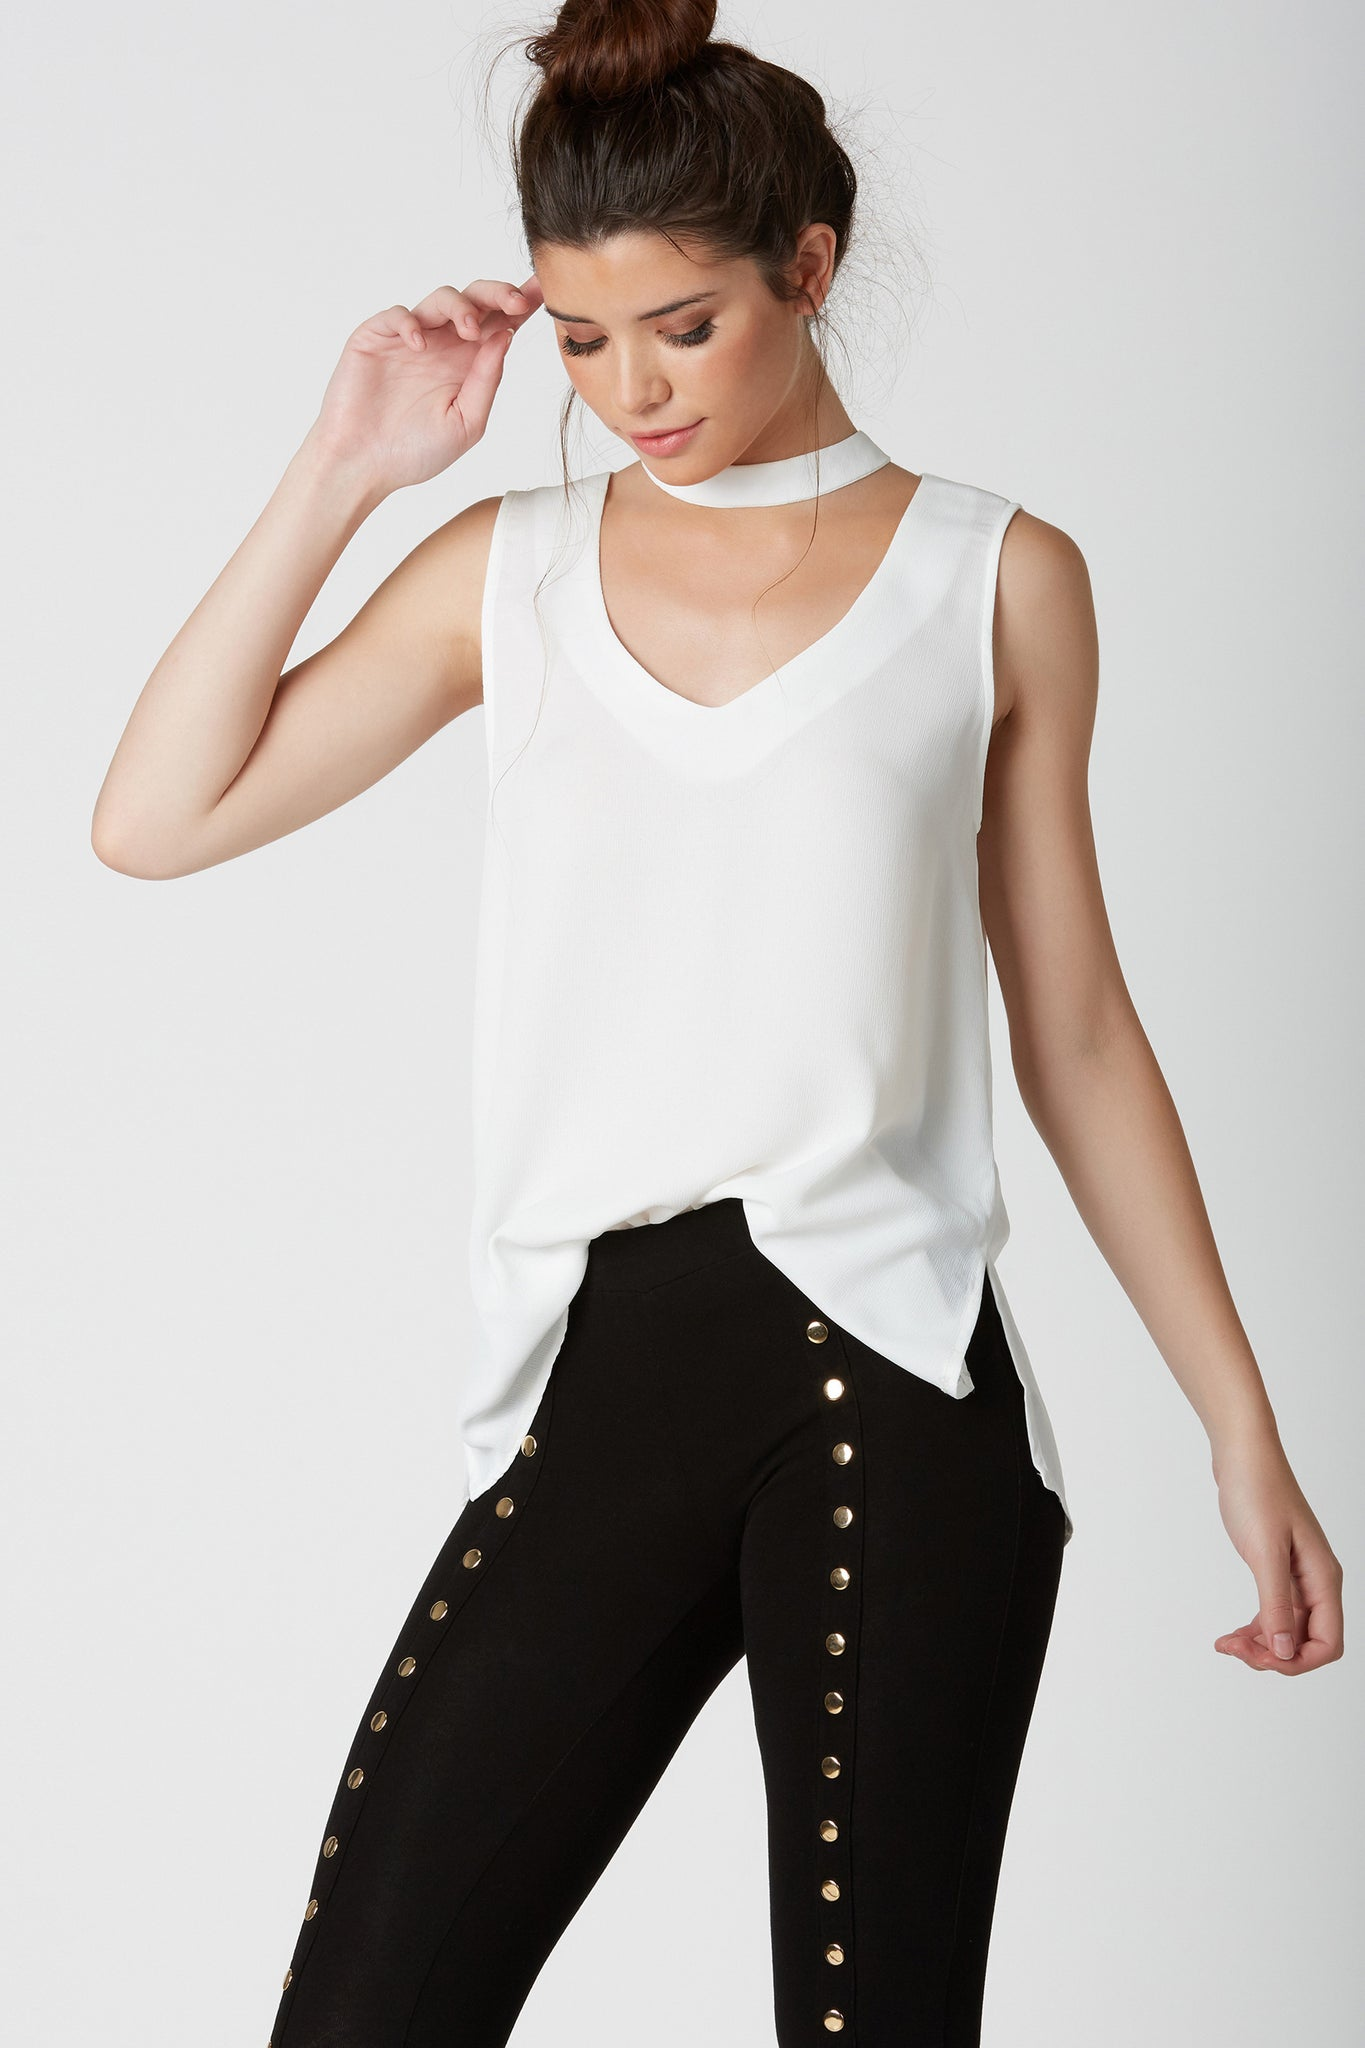 Chic sleeveless blouse with cut out choker neckline. Lightweight material with relaxed fit and button closure in back.